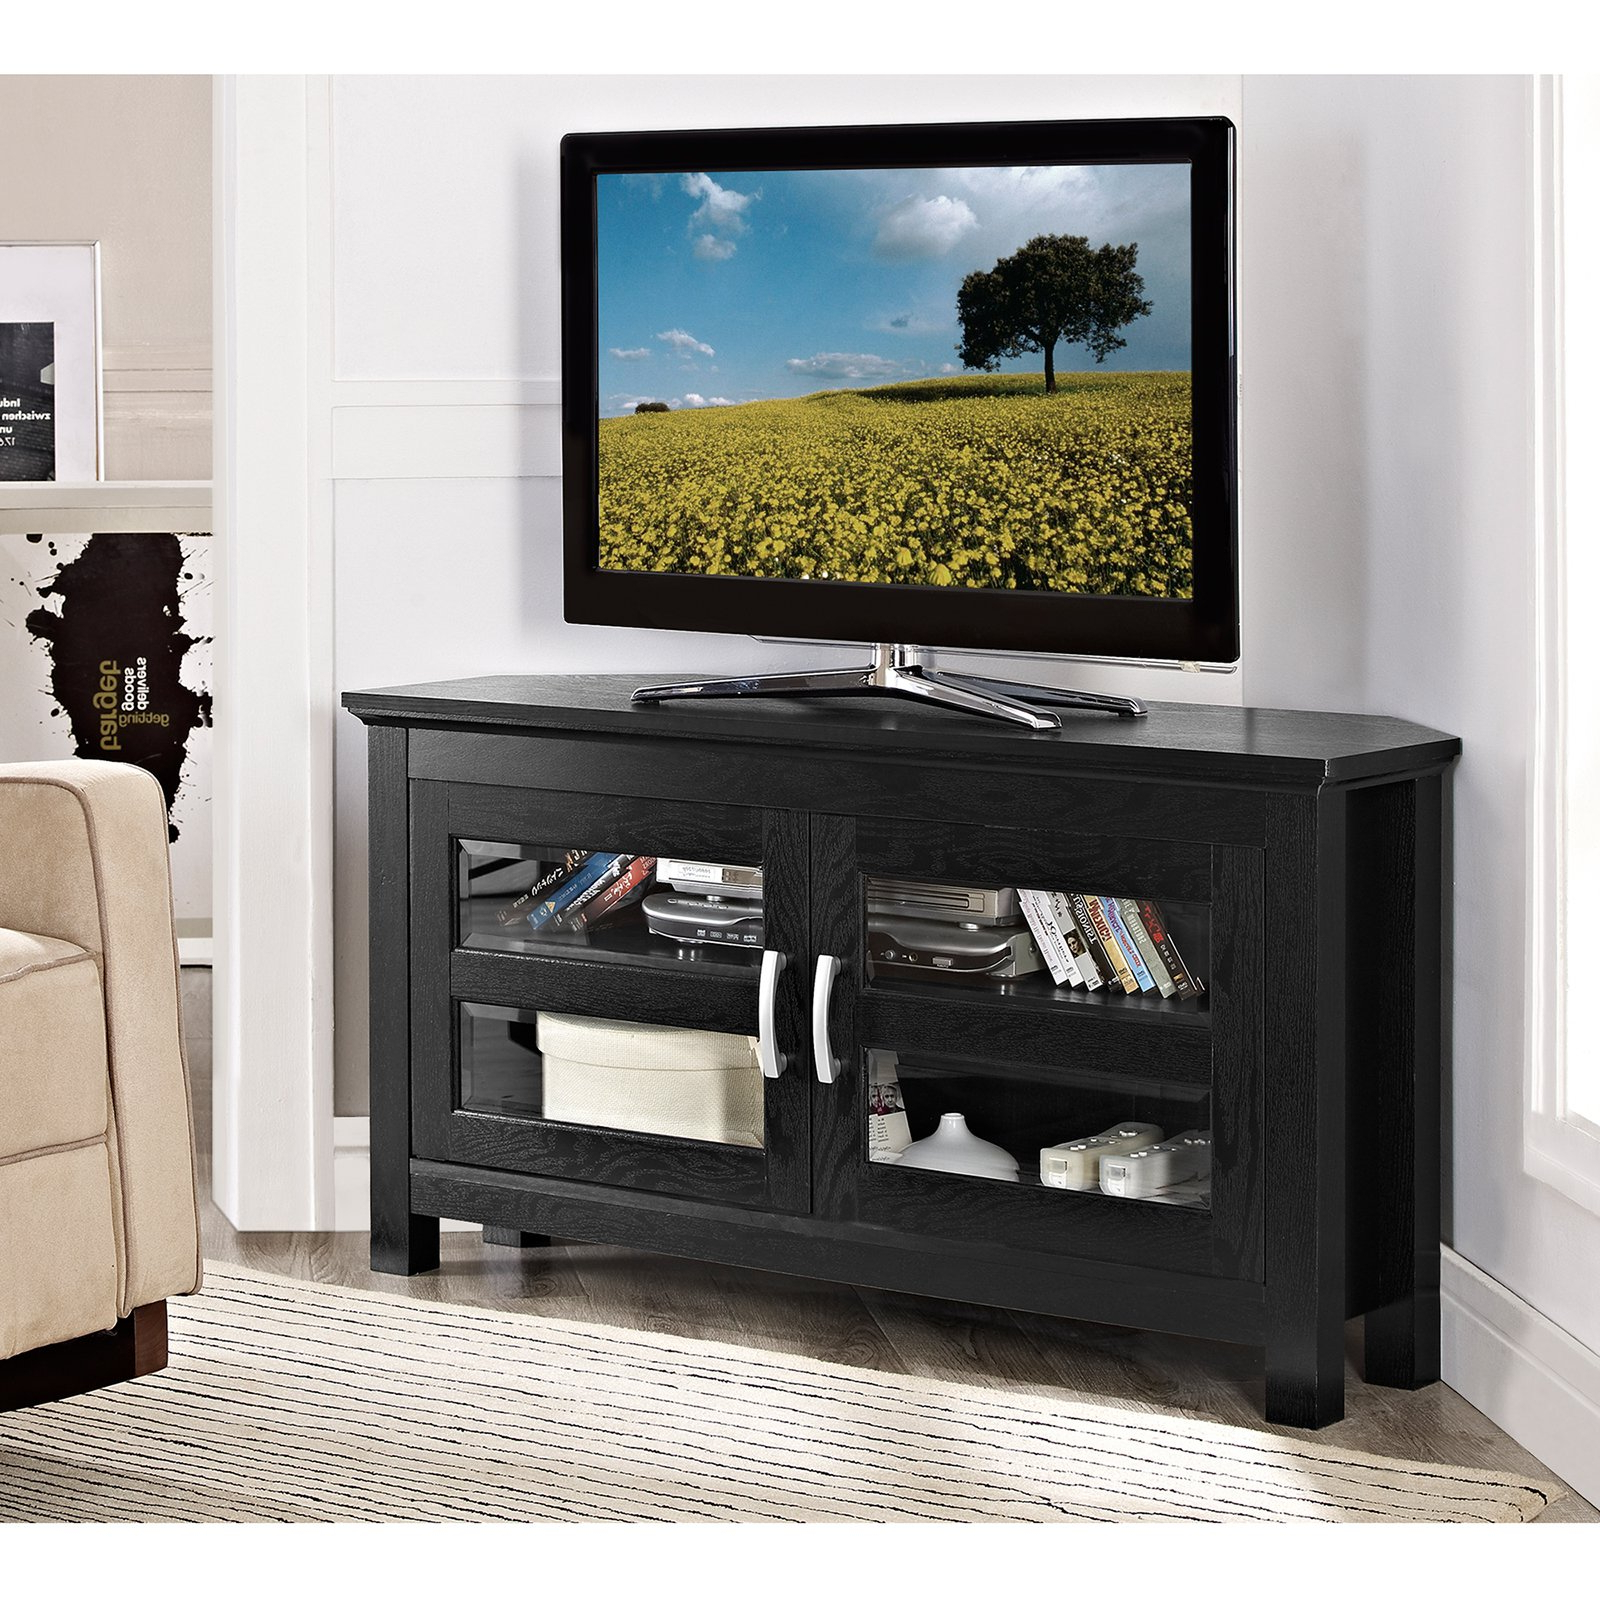 Trendy Grey Wash Entertainment Unit Center Walmart Fireplace Tv Stand Home Within Wooden Tv Cabinets With Glass Doors (View 12 of 20)